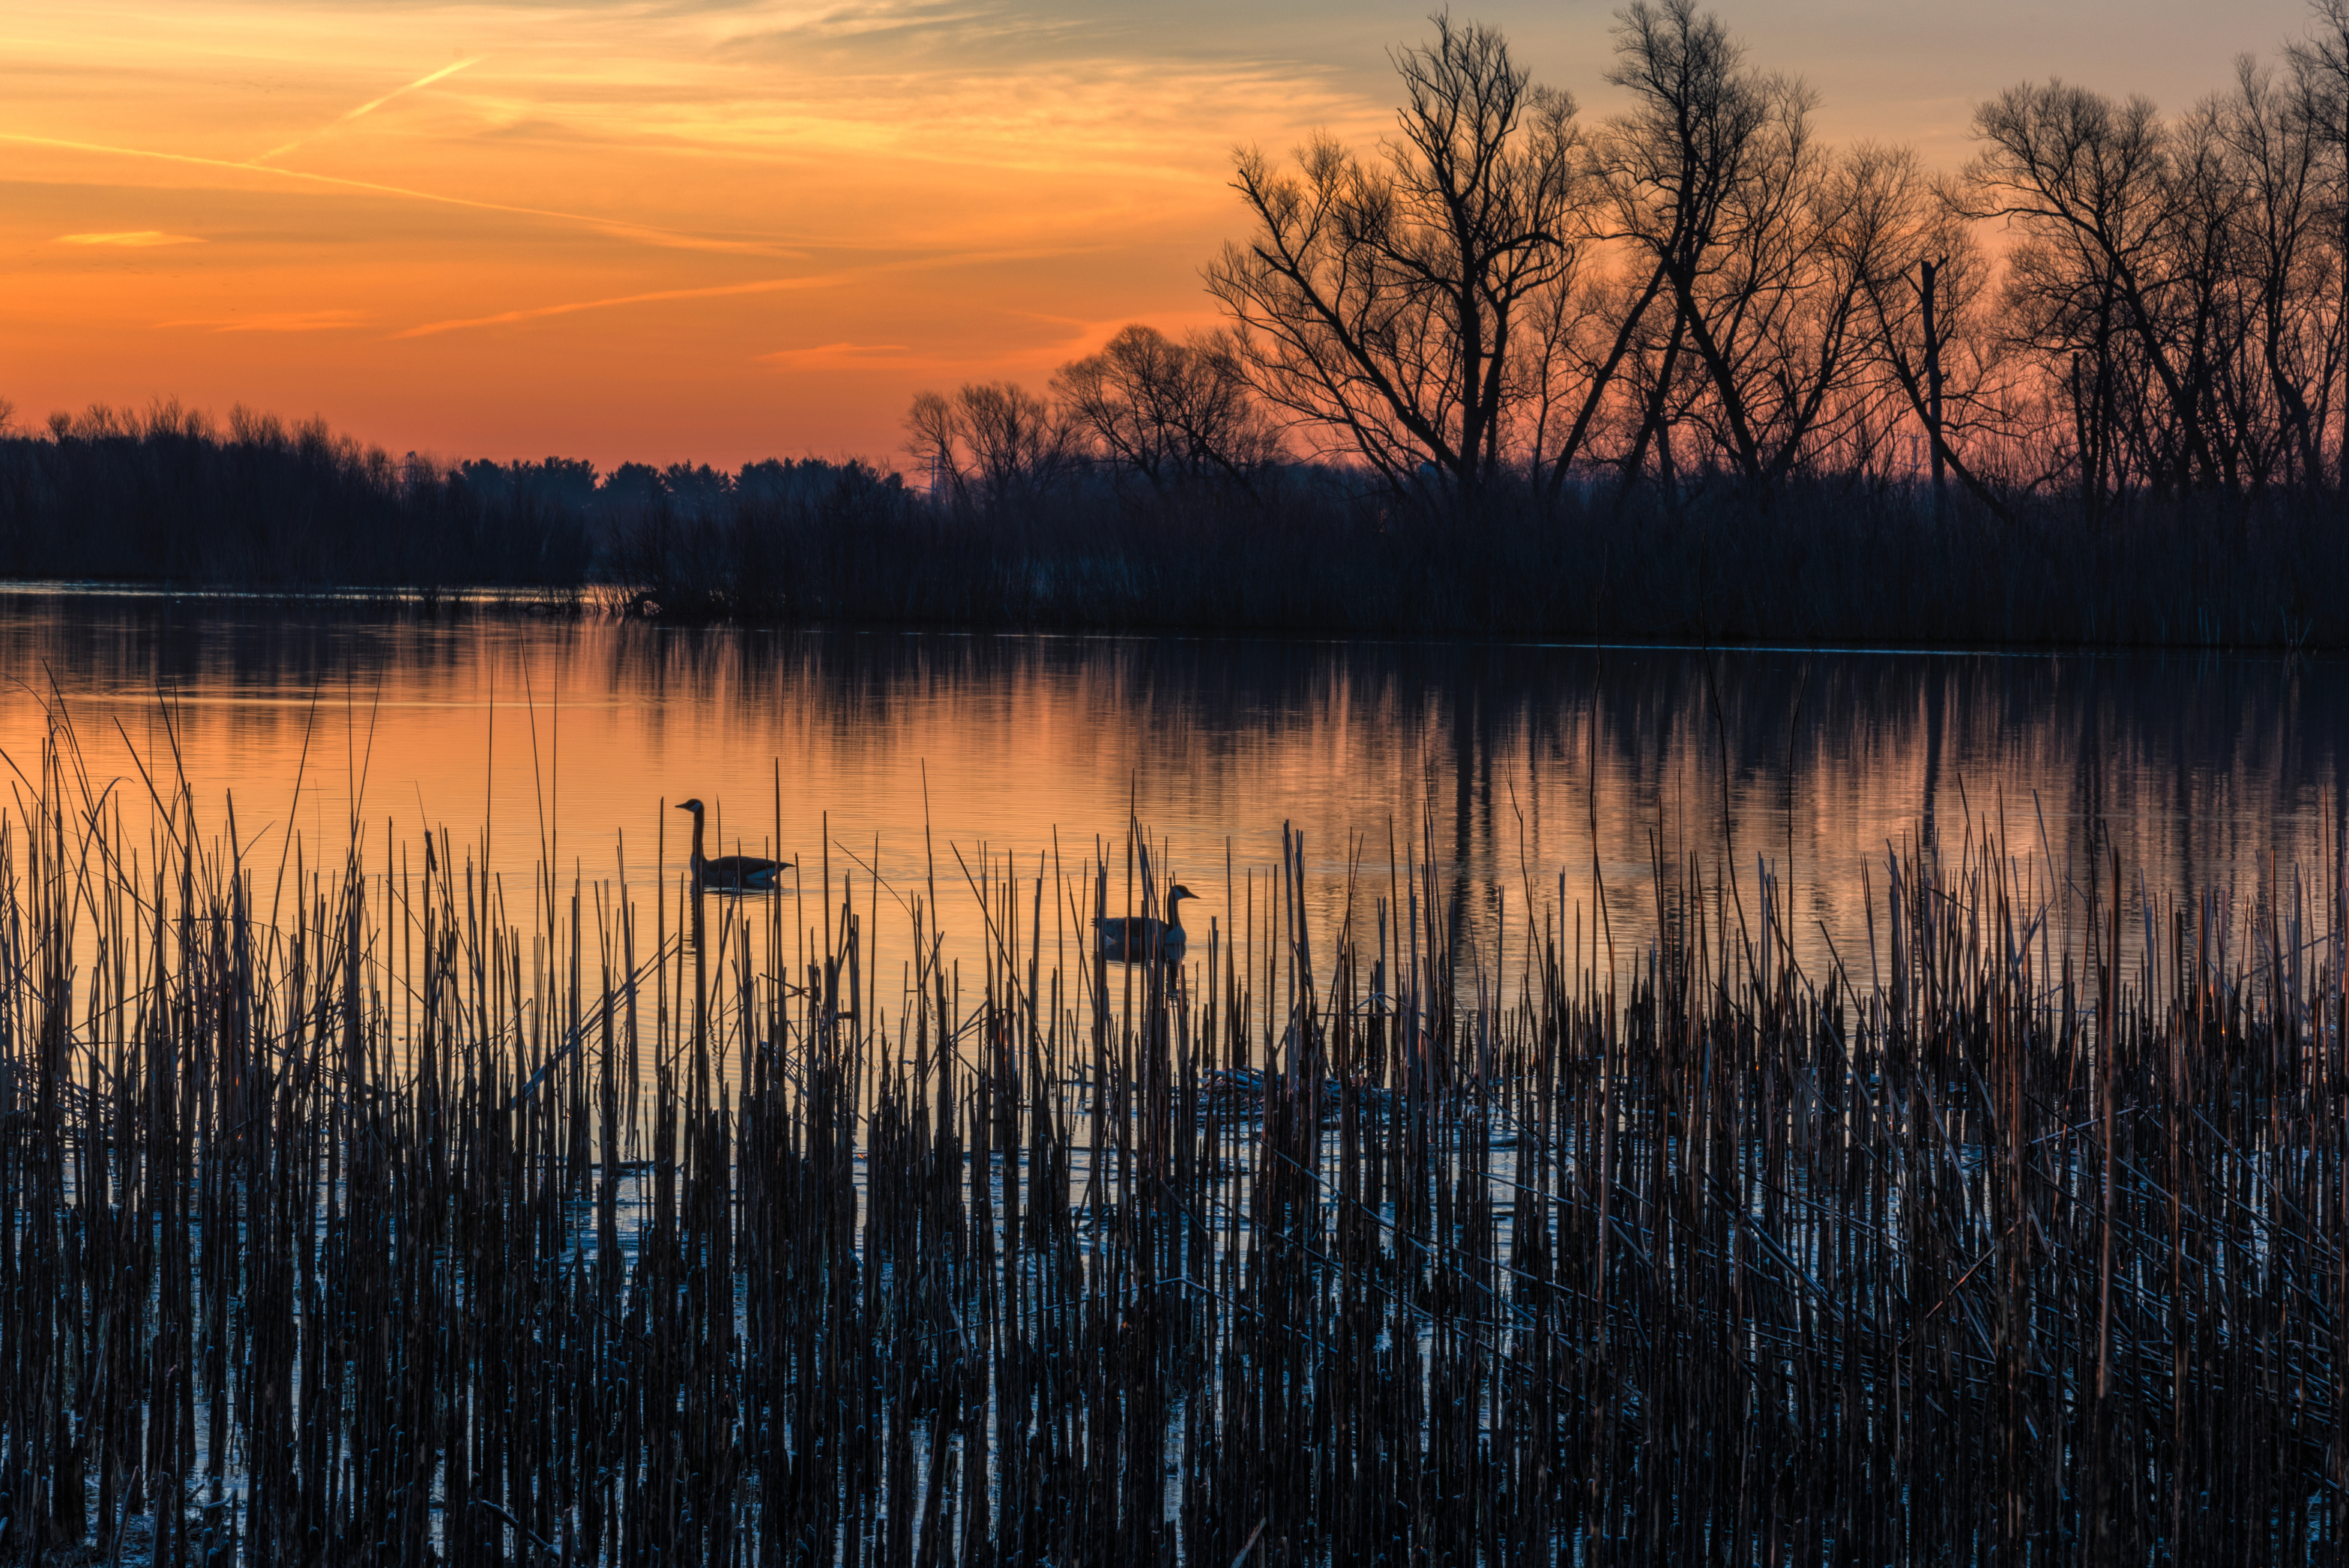 nature, wildlife, bird, goose, animal, lake, sunrise, sky